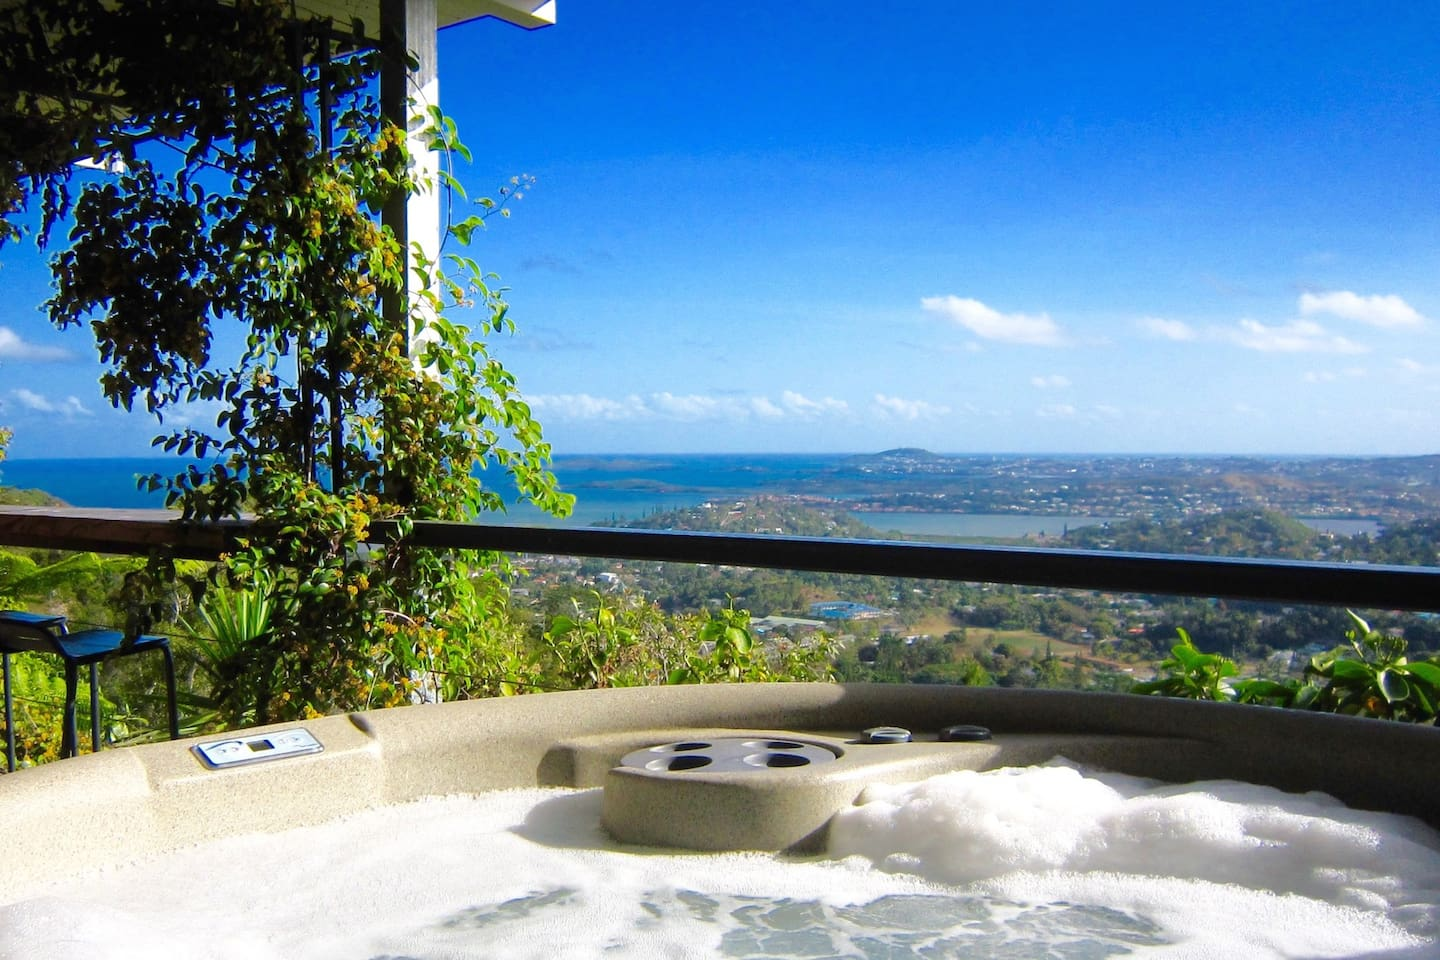 Magic View Spa - Lofts for Rent in Nouméa, Province Sud, New Caledonia